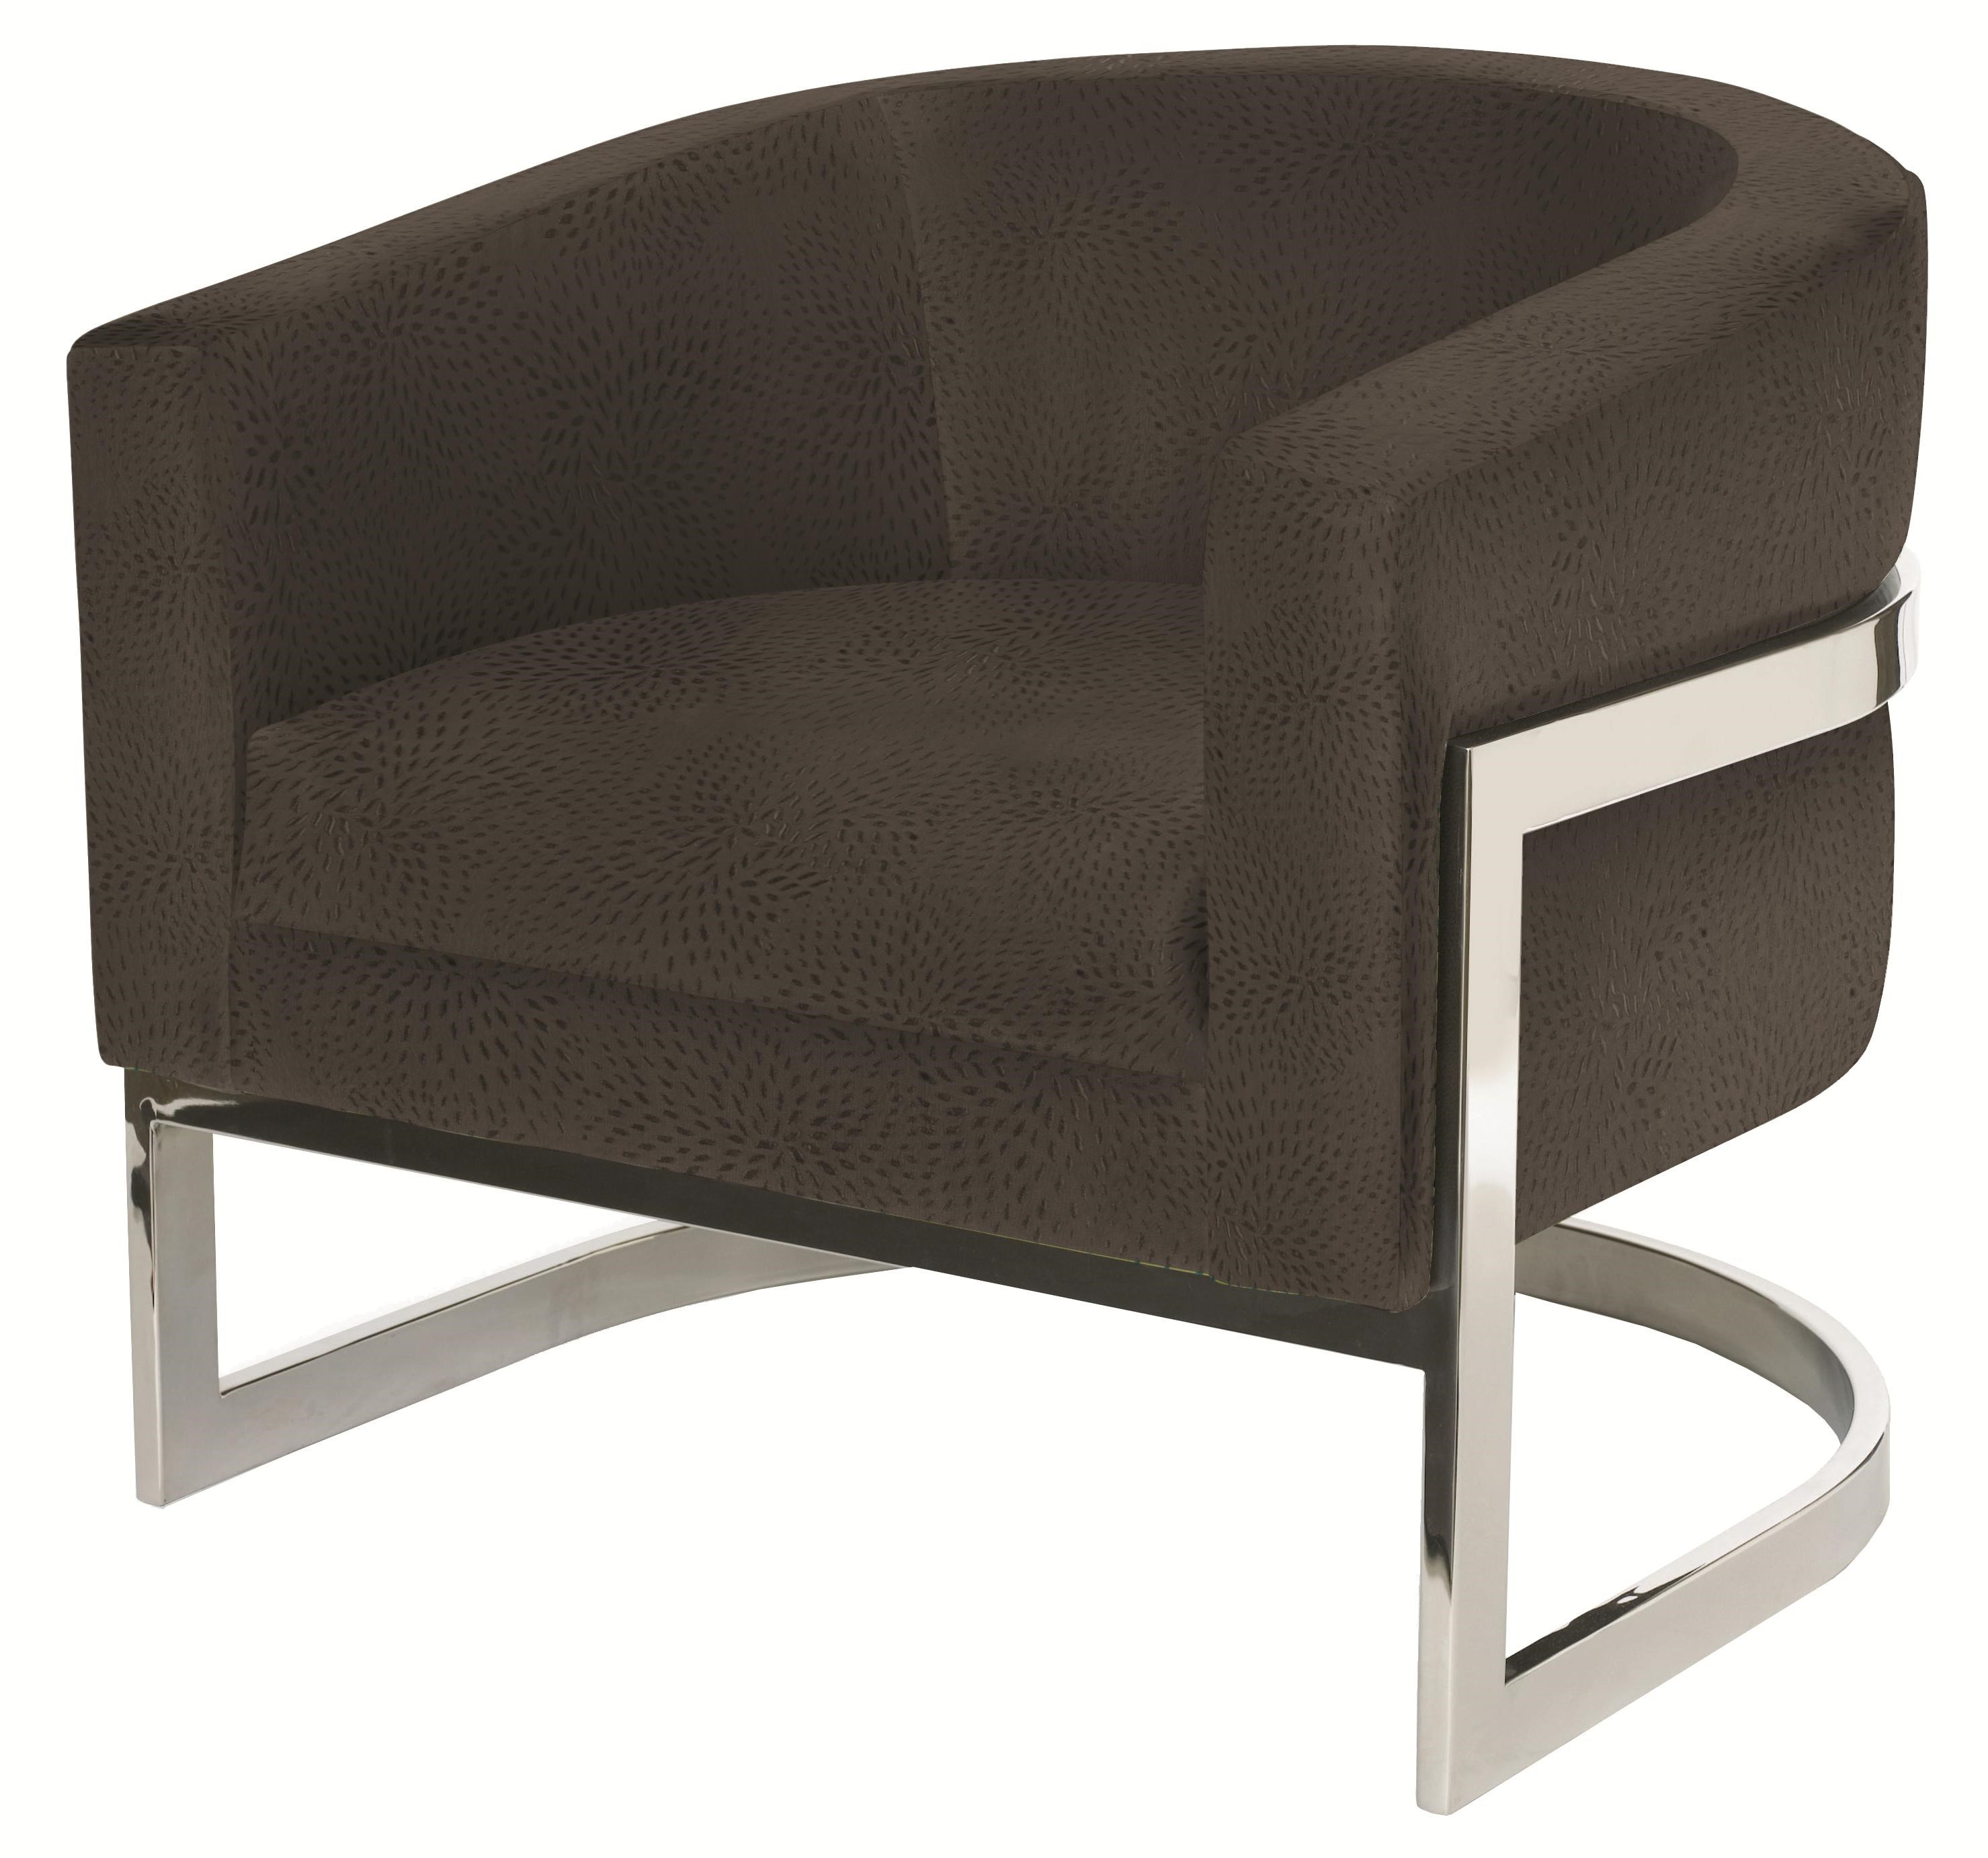 Gentil Bernhardt Upholstered Accents Callie Chair With Metal Legs And Modern Barrel  Chair Style